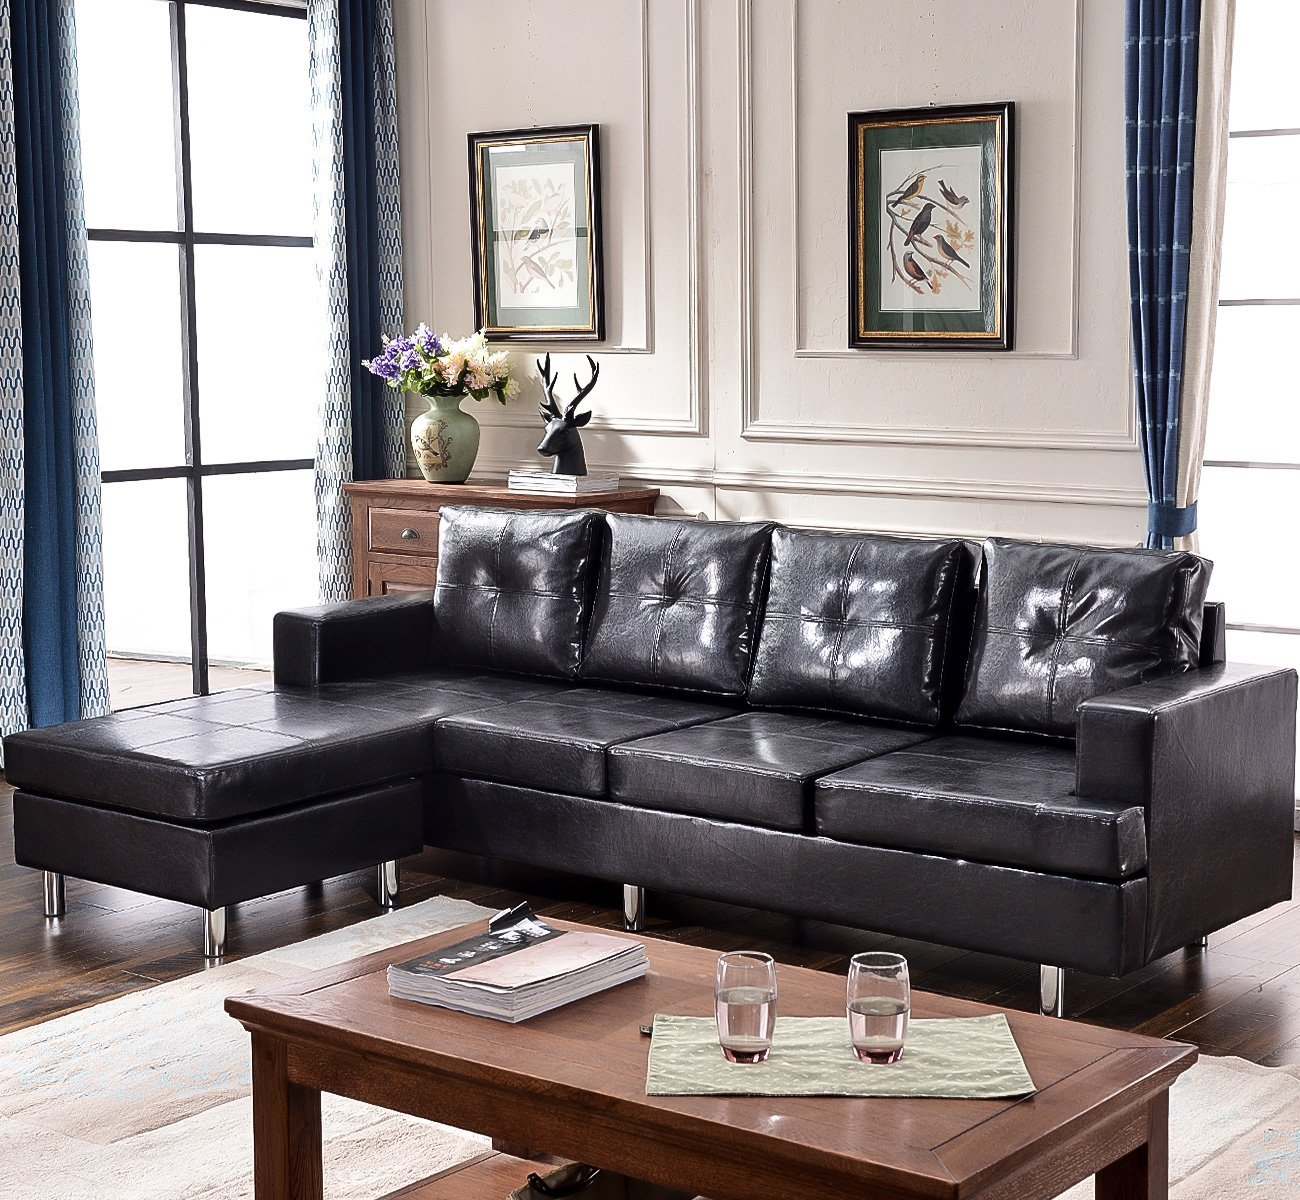 Harper & Bright Designs Sectional Sofa Set with Reversible Chaise